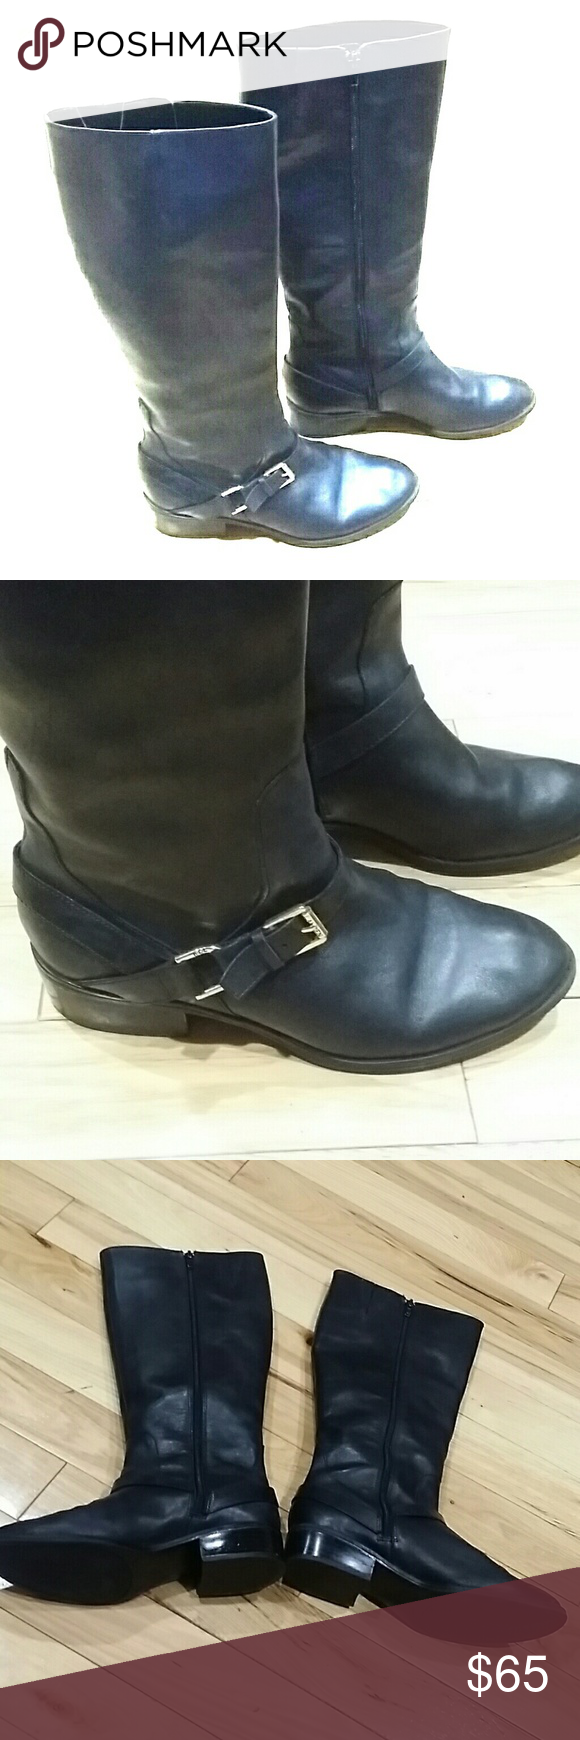 Ralph  Lauren knee boots black size 7.5 B Ralph Lauren knee high boots black color size 7.5 B has a buckle on the outside zipper on the inside beautiful black leather they are in very good condition. I'm selling them at a great price so get them today! Ralph Lauren Shoes Over the Knee Boots